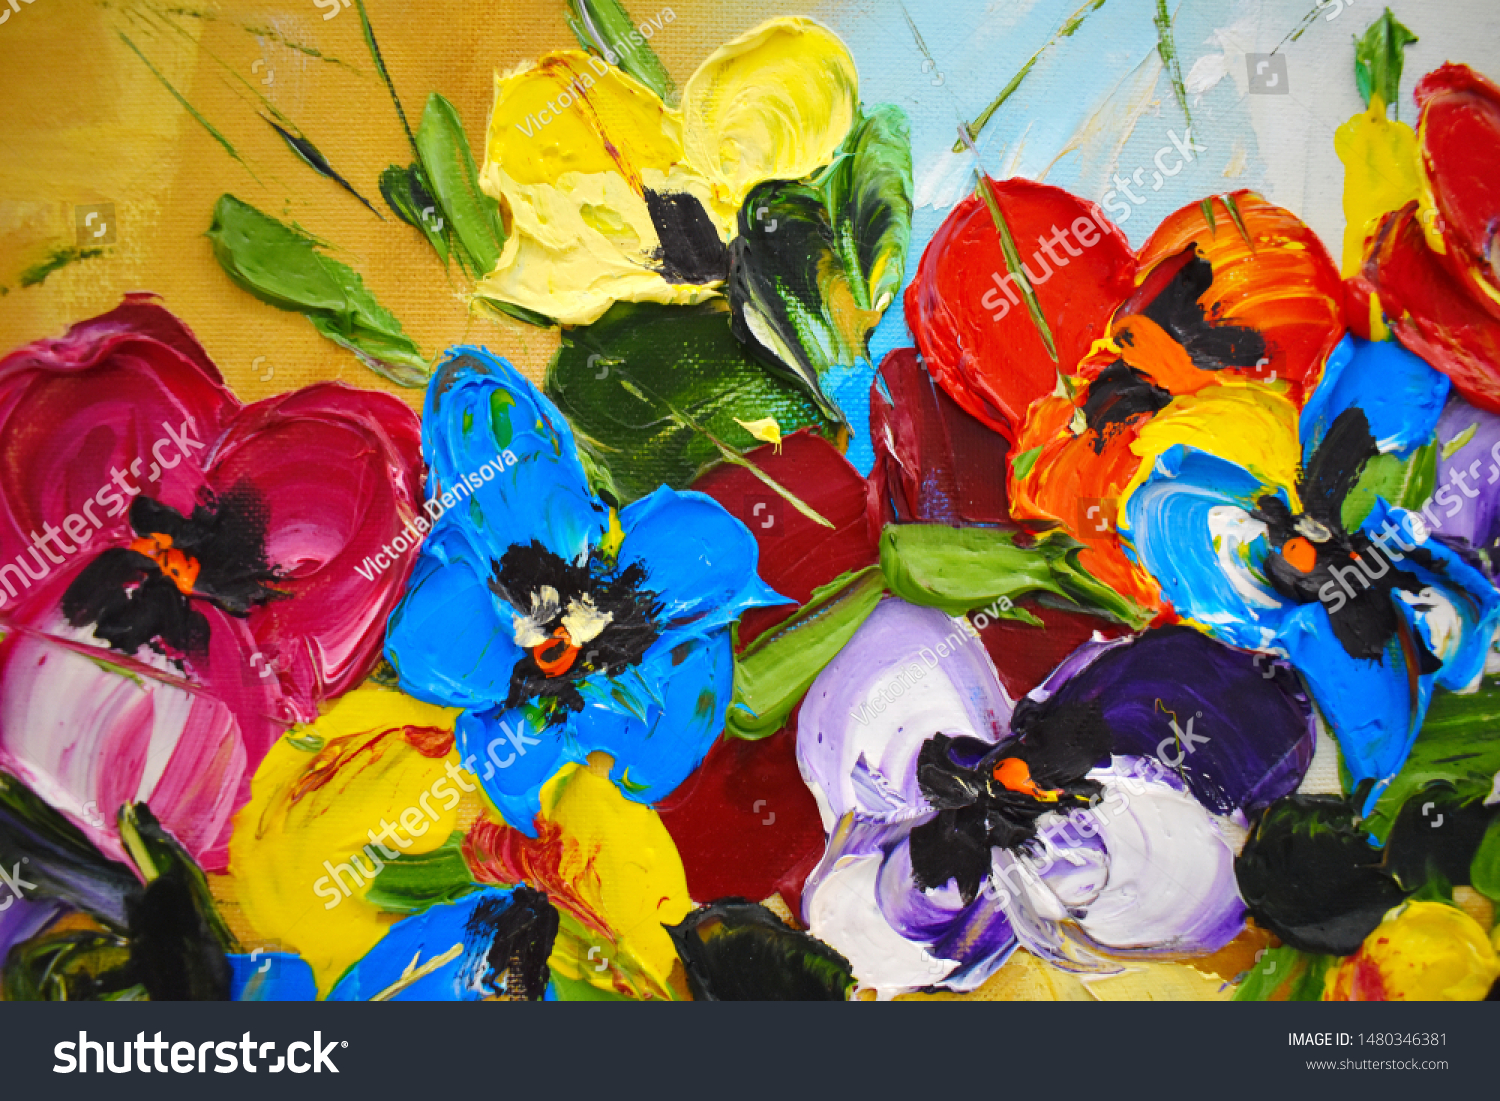 Fragment of an oil painting. Drawn bright multi-colored flowers. Abstract colorful background #1480346381